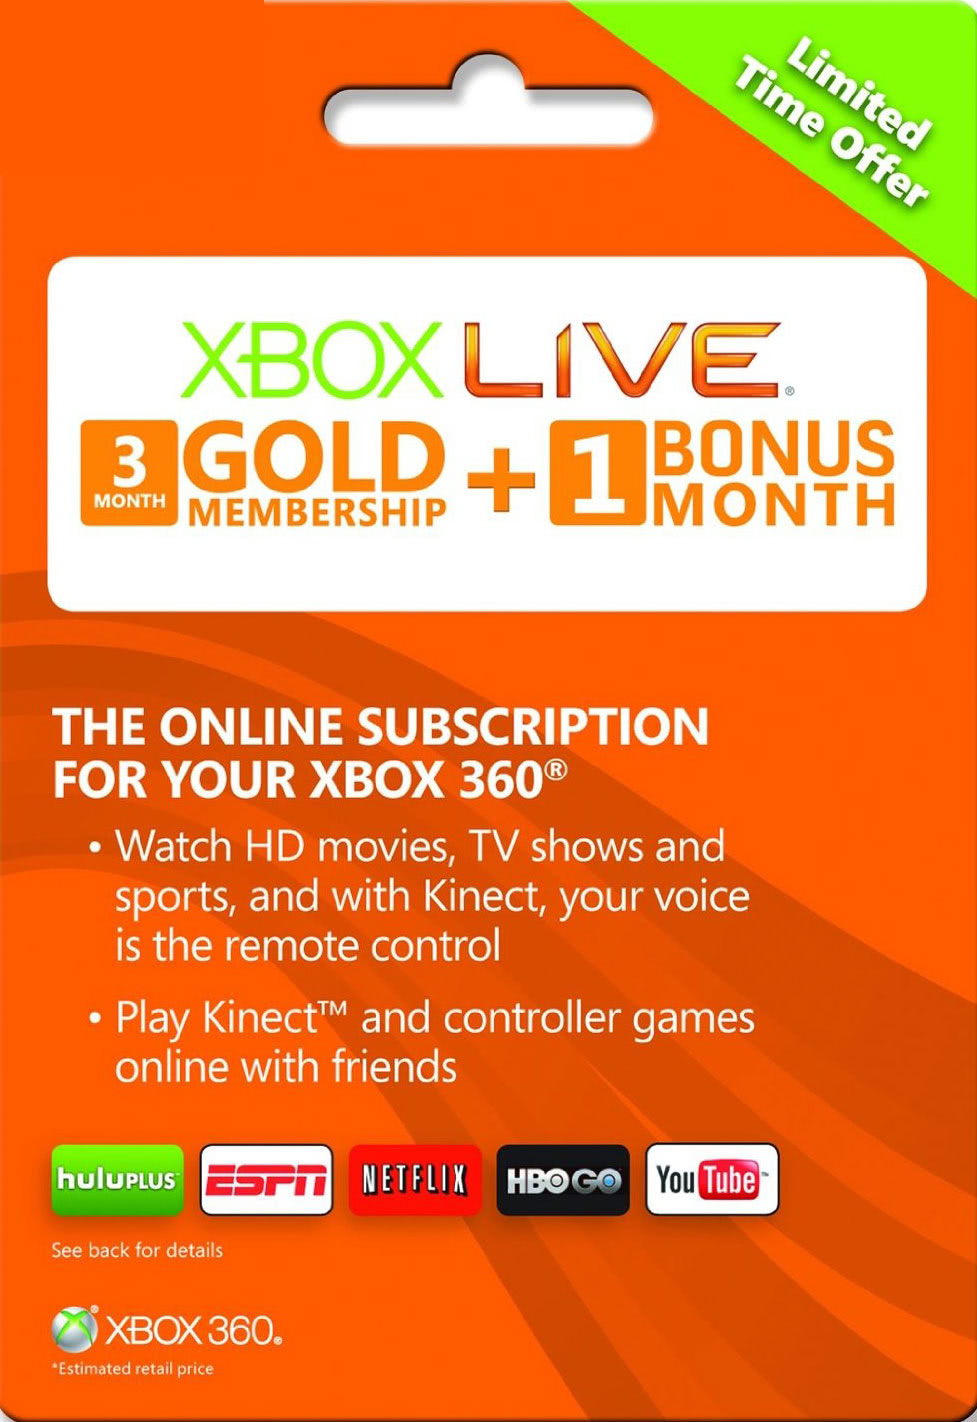 how to cancel xbox live 1 month subscription